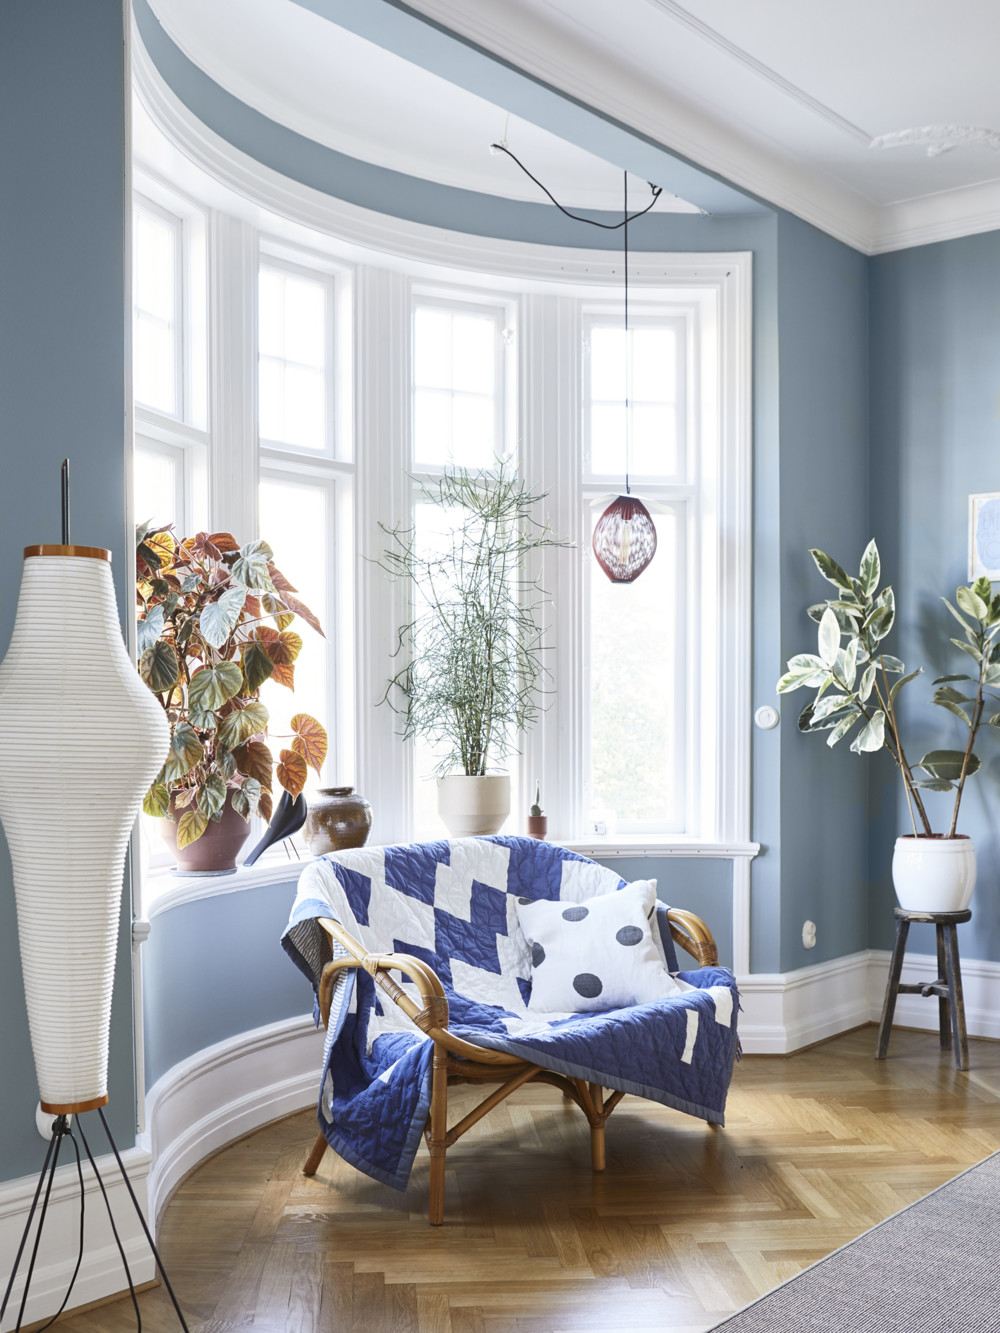 A Scandinavian Apartment Decorated in Blue and Grey Tones — THE NORDROOM